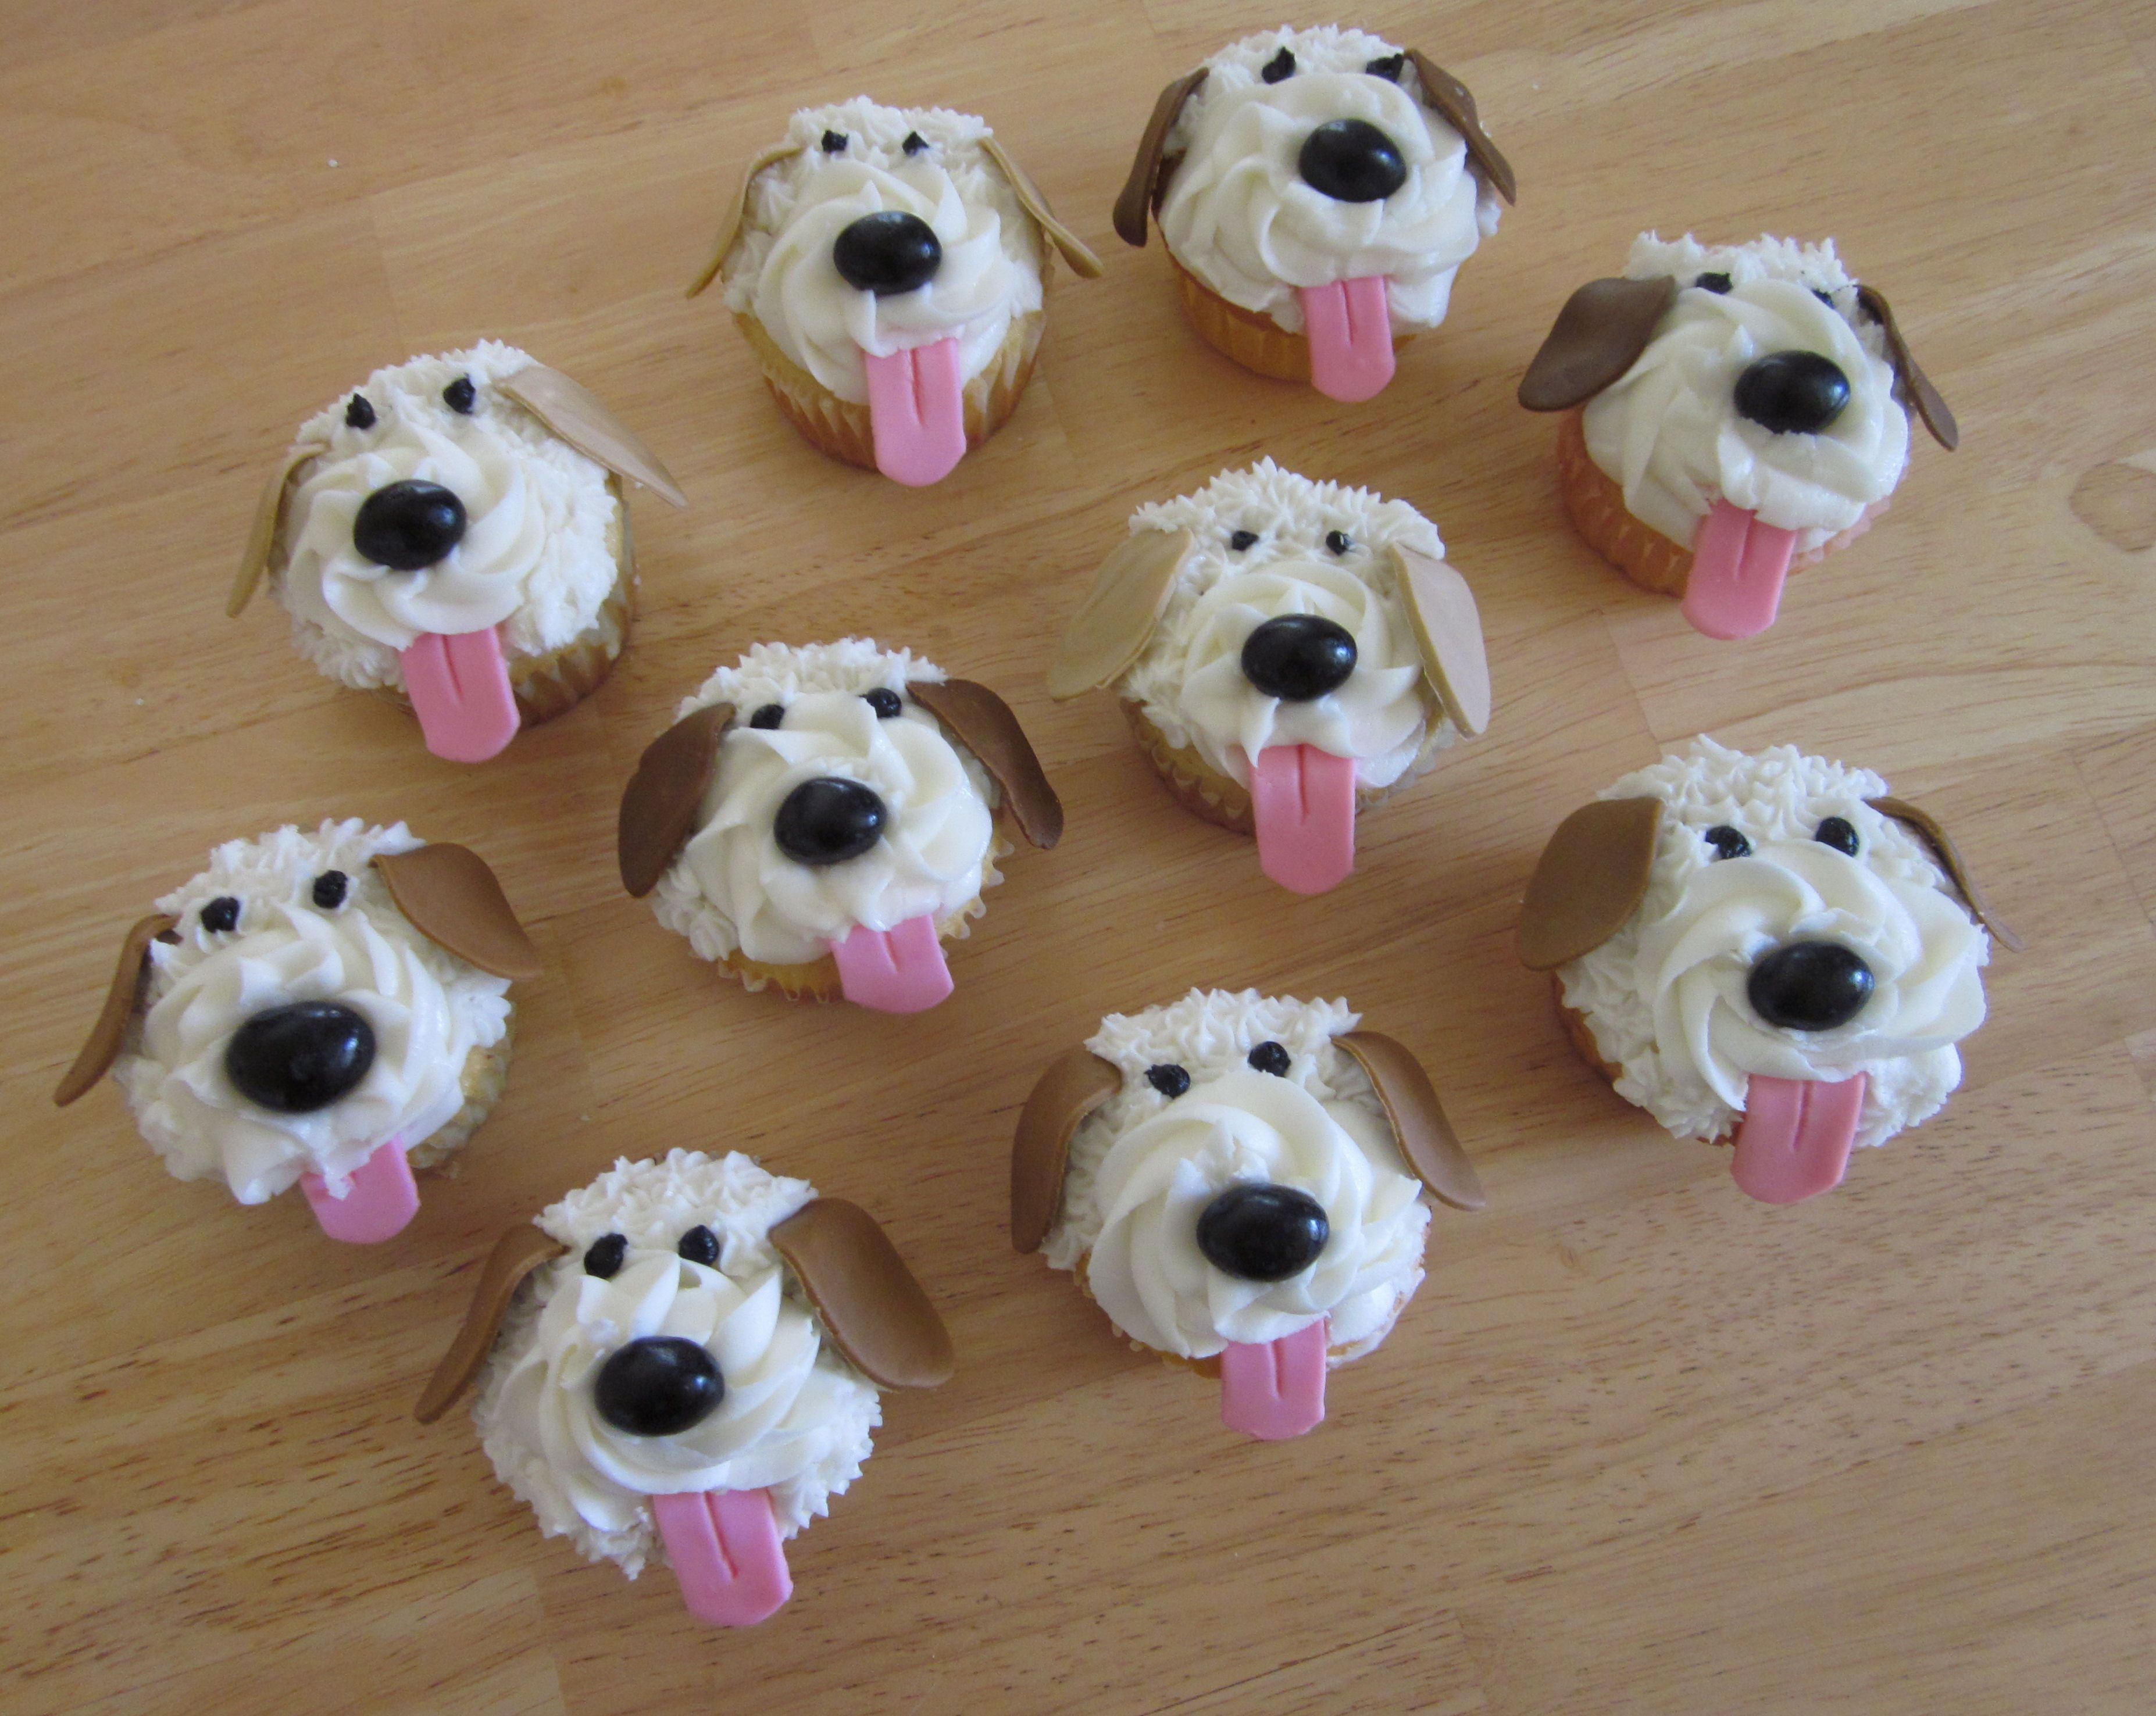 Dog Birthday Decorations 17 Best Ideas About Puppy Dog Cupcakes On Pinterest Puppy Cake